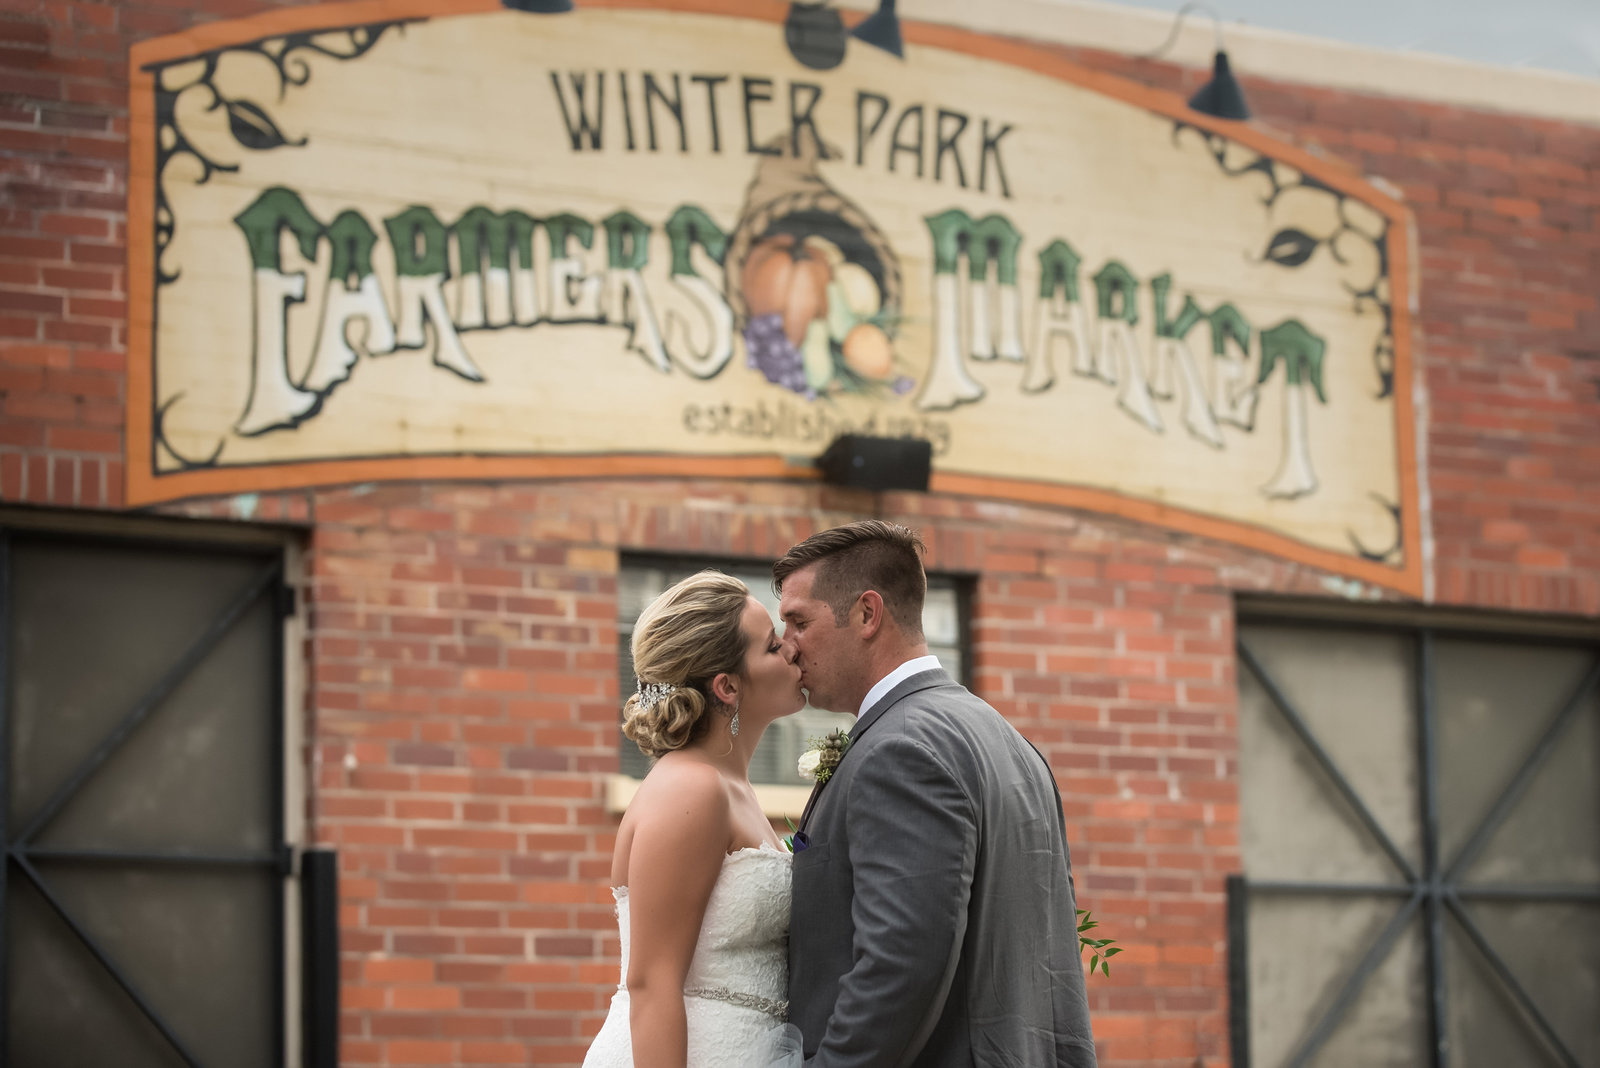 winter-park-farmers-market-wedding-katie-and-katie 1800-Edit-Edit